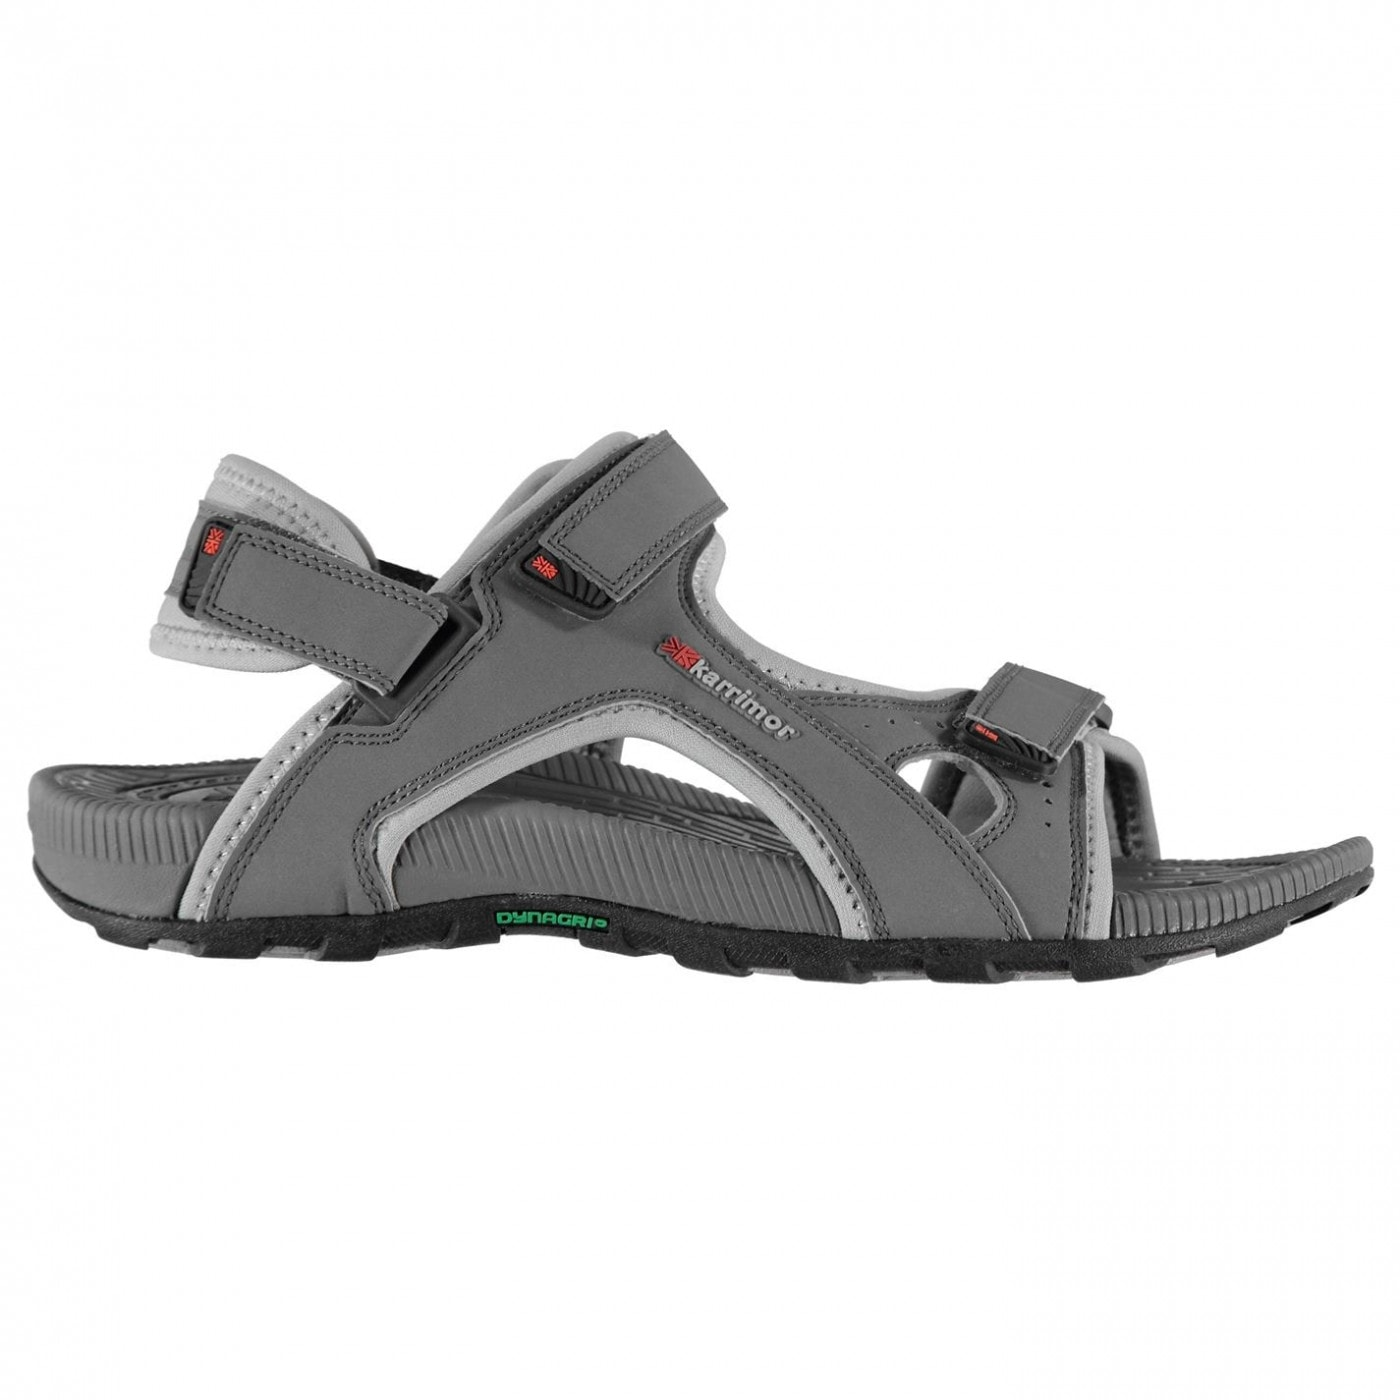 Men's sandals Karrimor Antibes